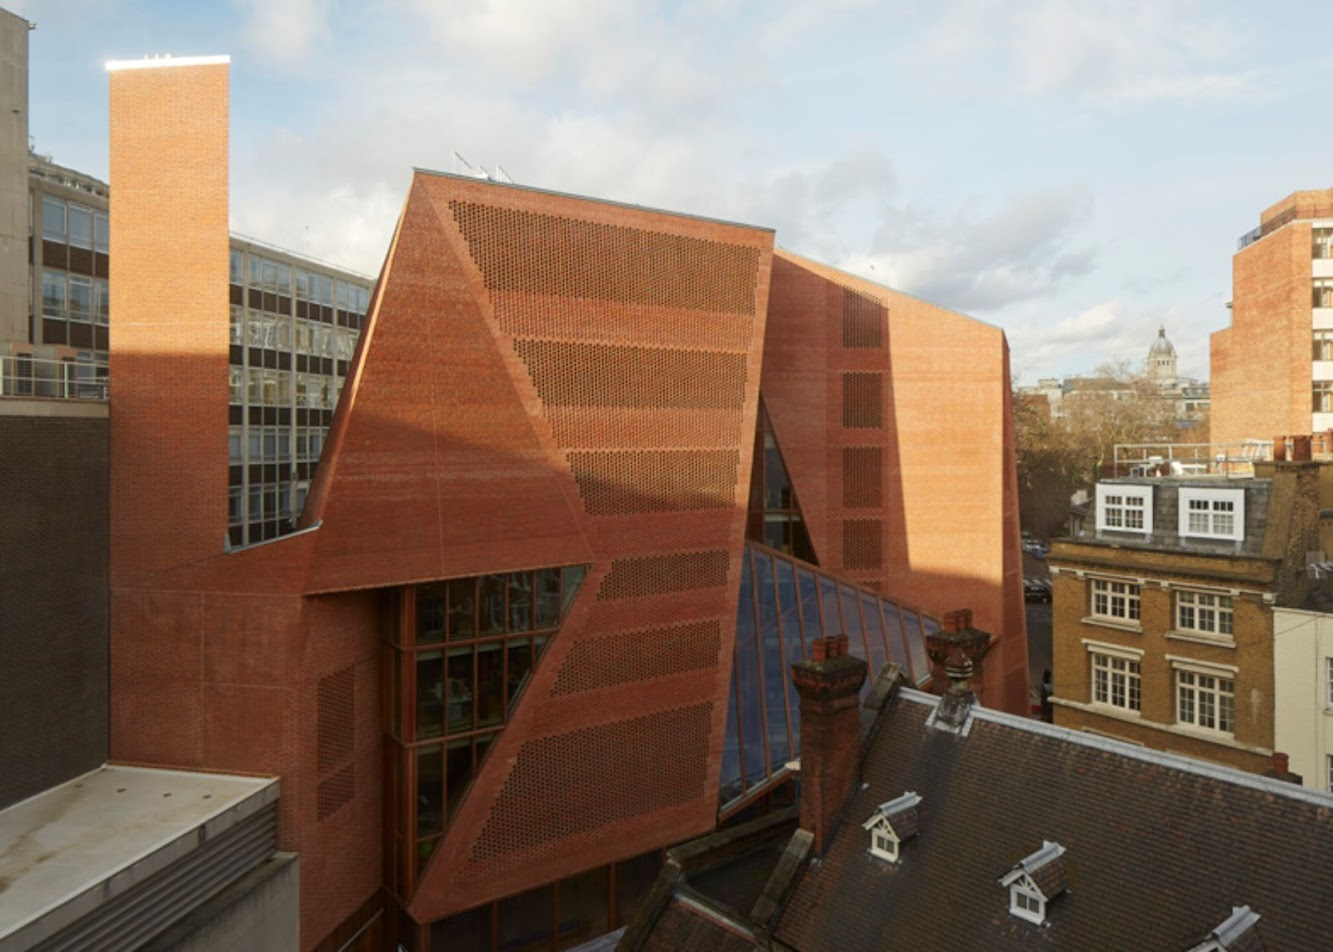 Londra, Regno Unito: Lse Saw Swee Hock Students' Centre by O'Donnell + Tuomey